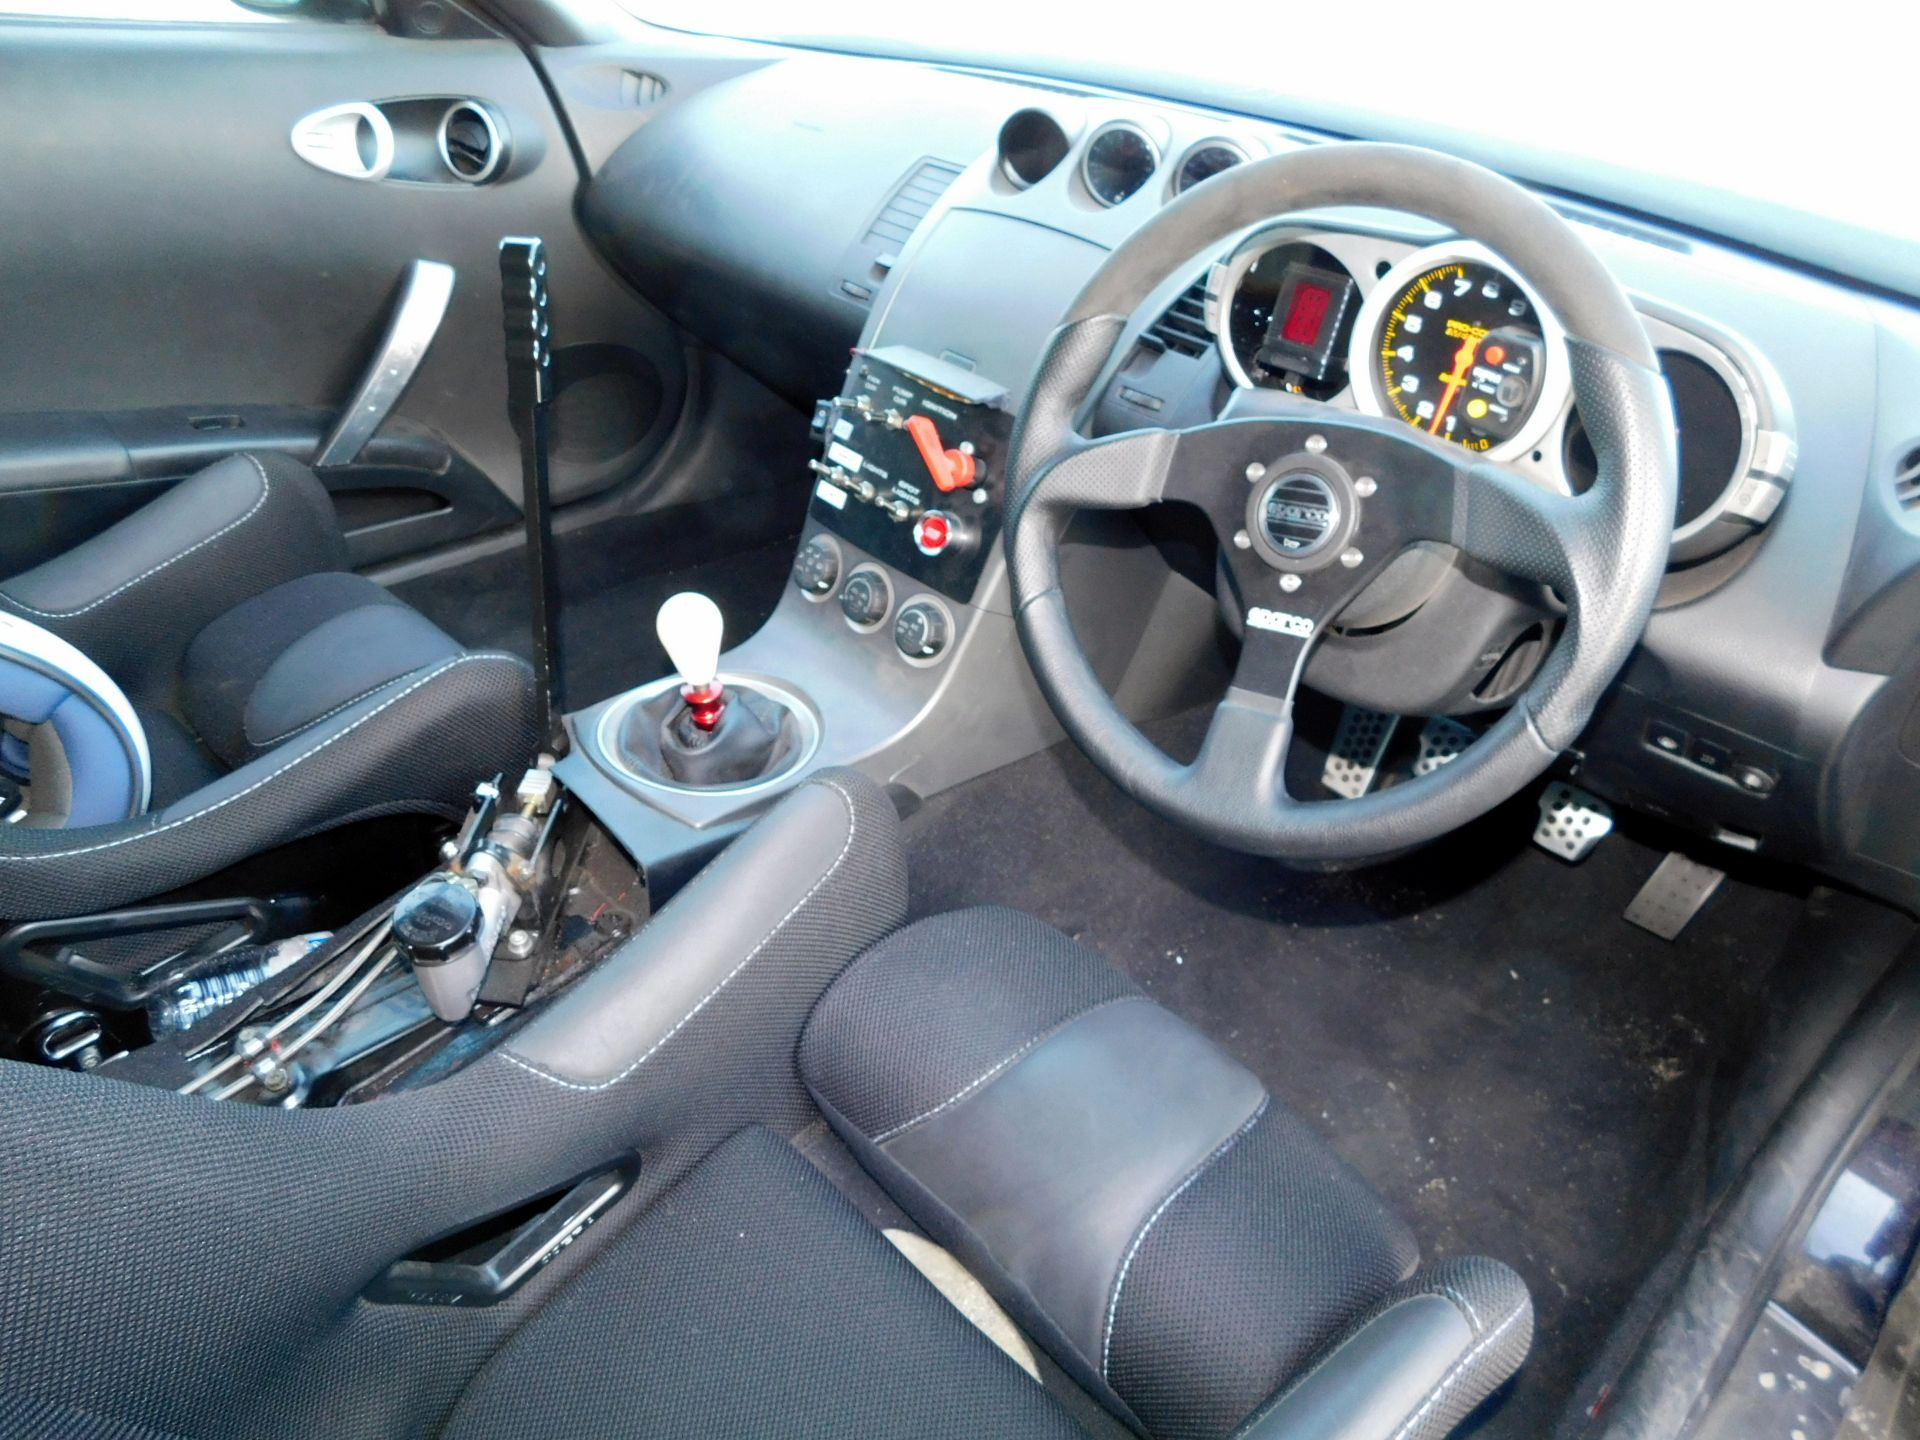 """Nissan 350z 2 door Coupe Original Picture Car From """"Fast & Furious 3""""* ,LS3 V8 6.2 Litre Engine, - Image 8 of 16"""